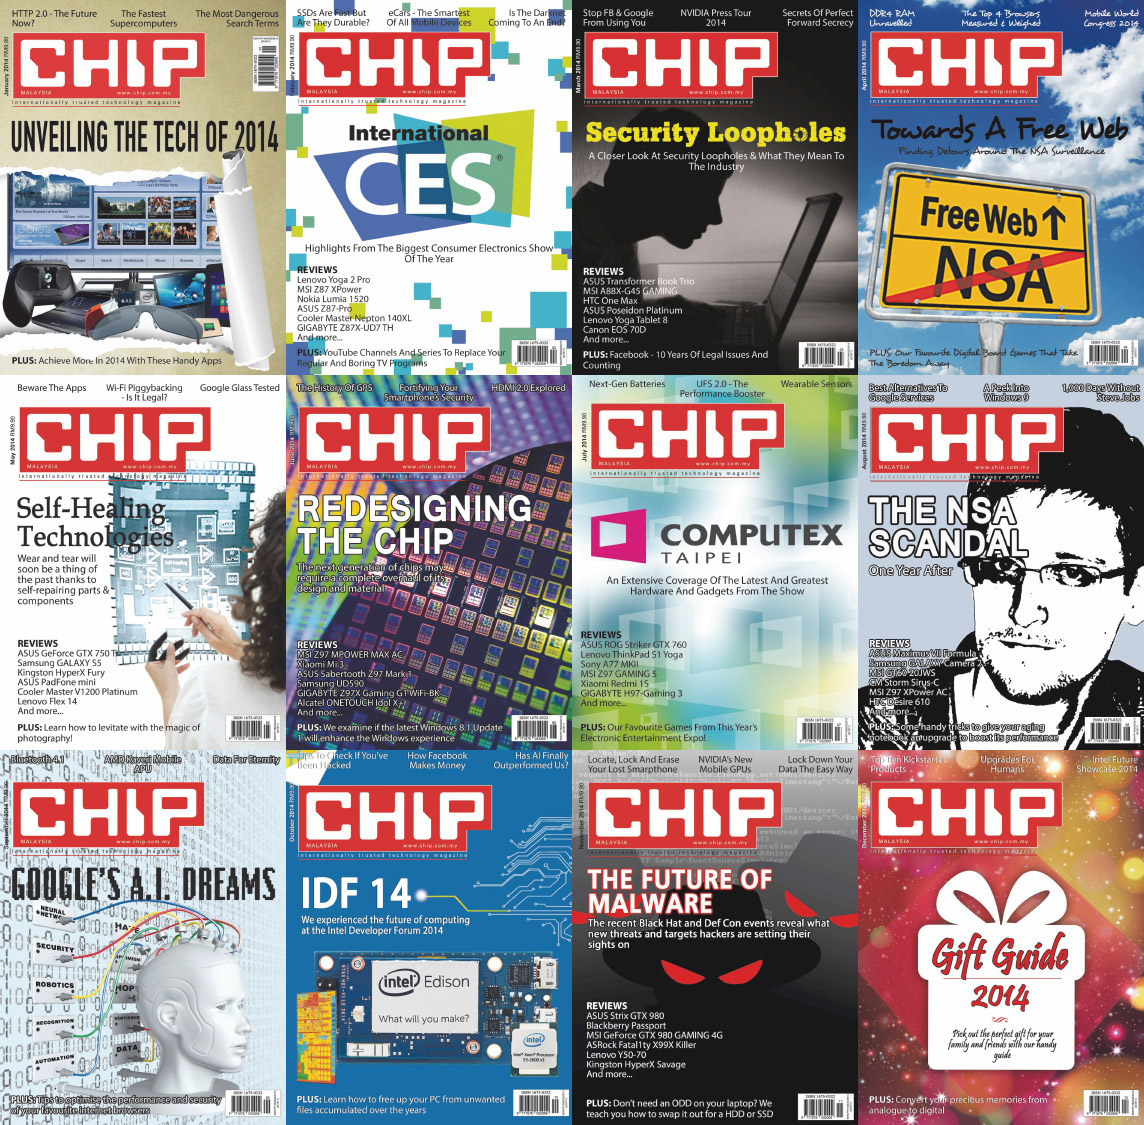 CHIP Malaysia Magazine - 2014 Full Year Issues Collection free download